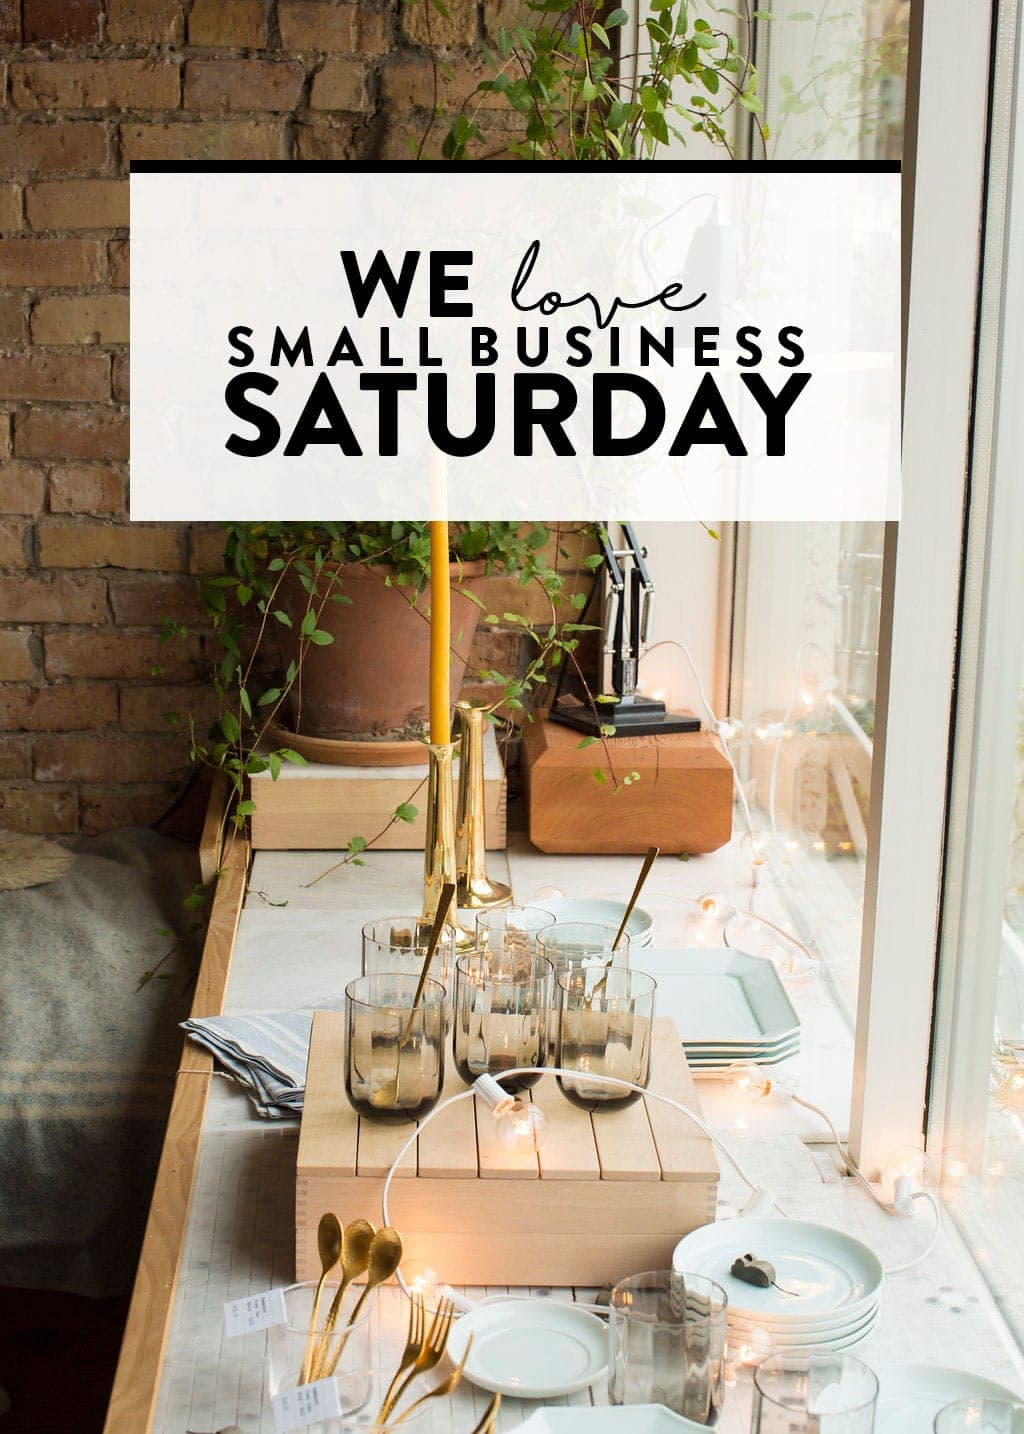 Today I am teaming up withSprint®Business to encourage all of you to give back to your local community and shop local on not just Small Business Saturday, but every day!